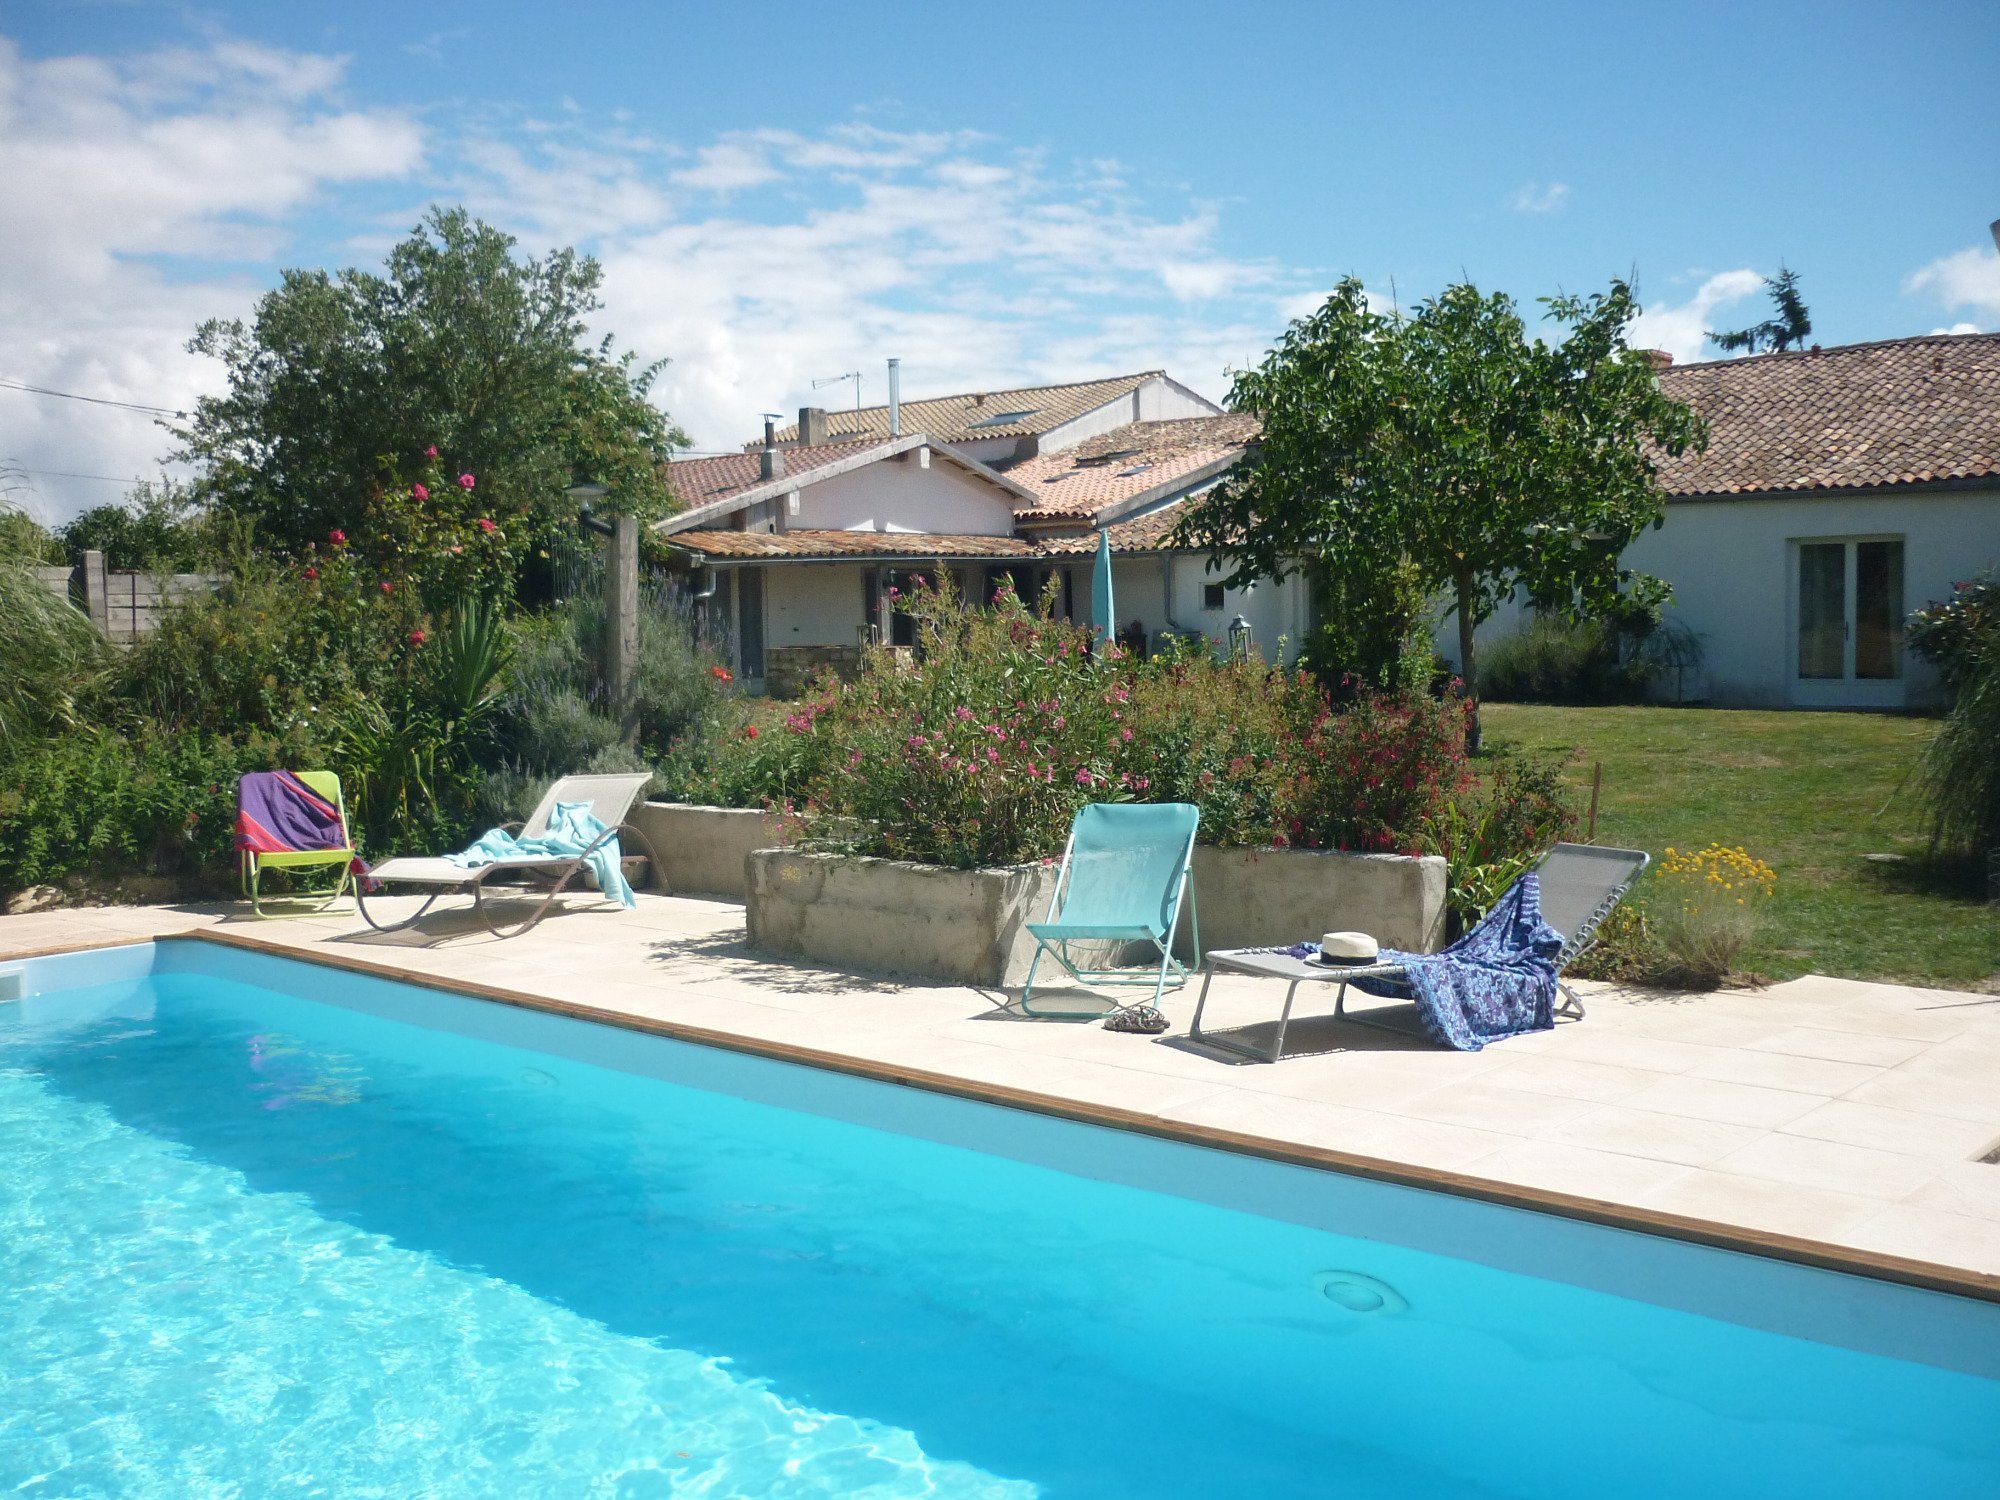 chambres d hotes khalink prices b b reviews andilly france